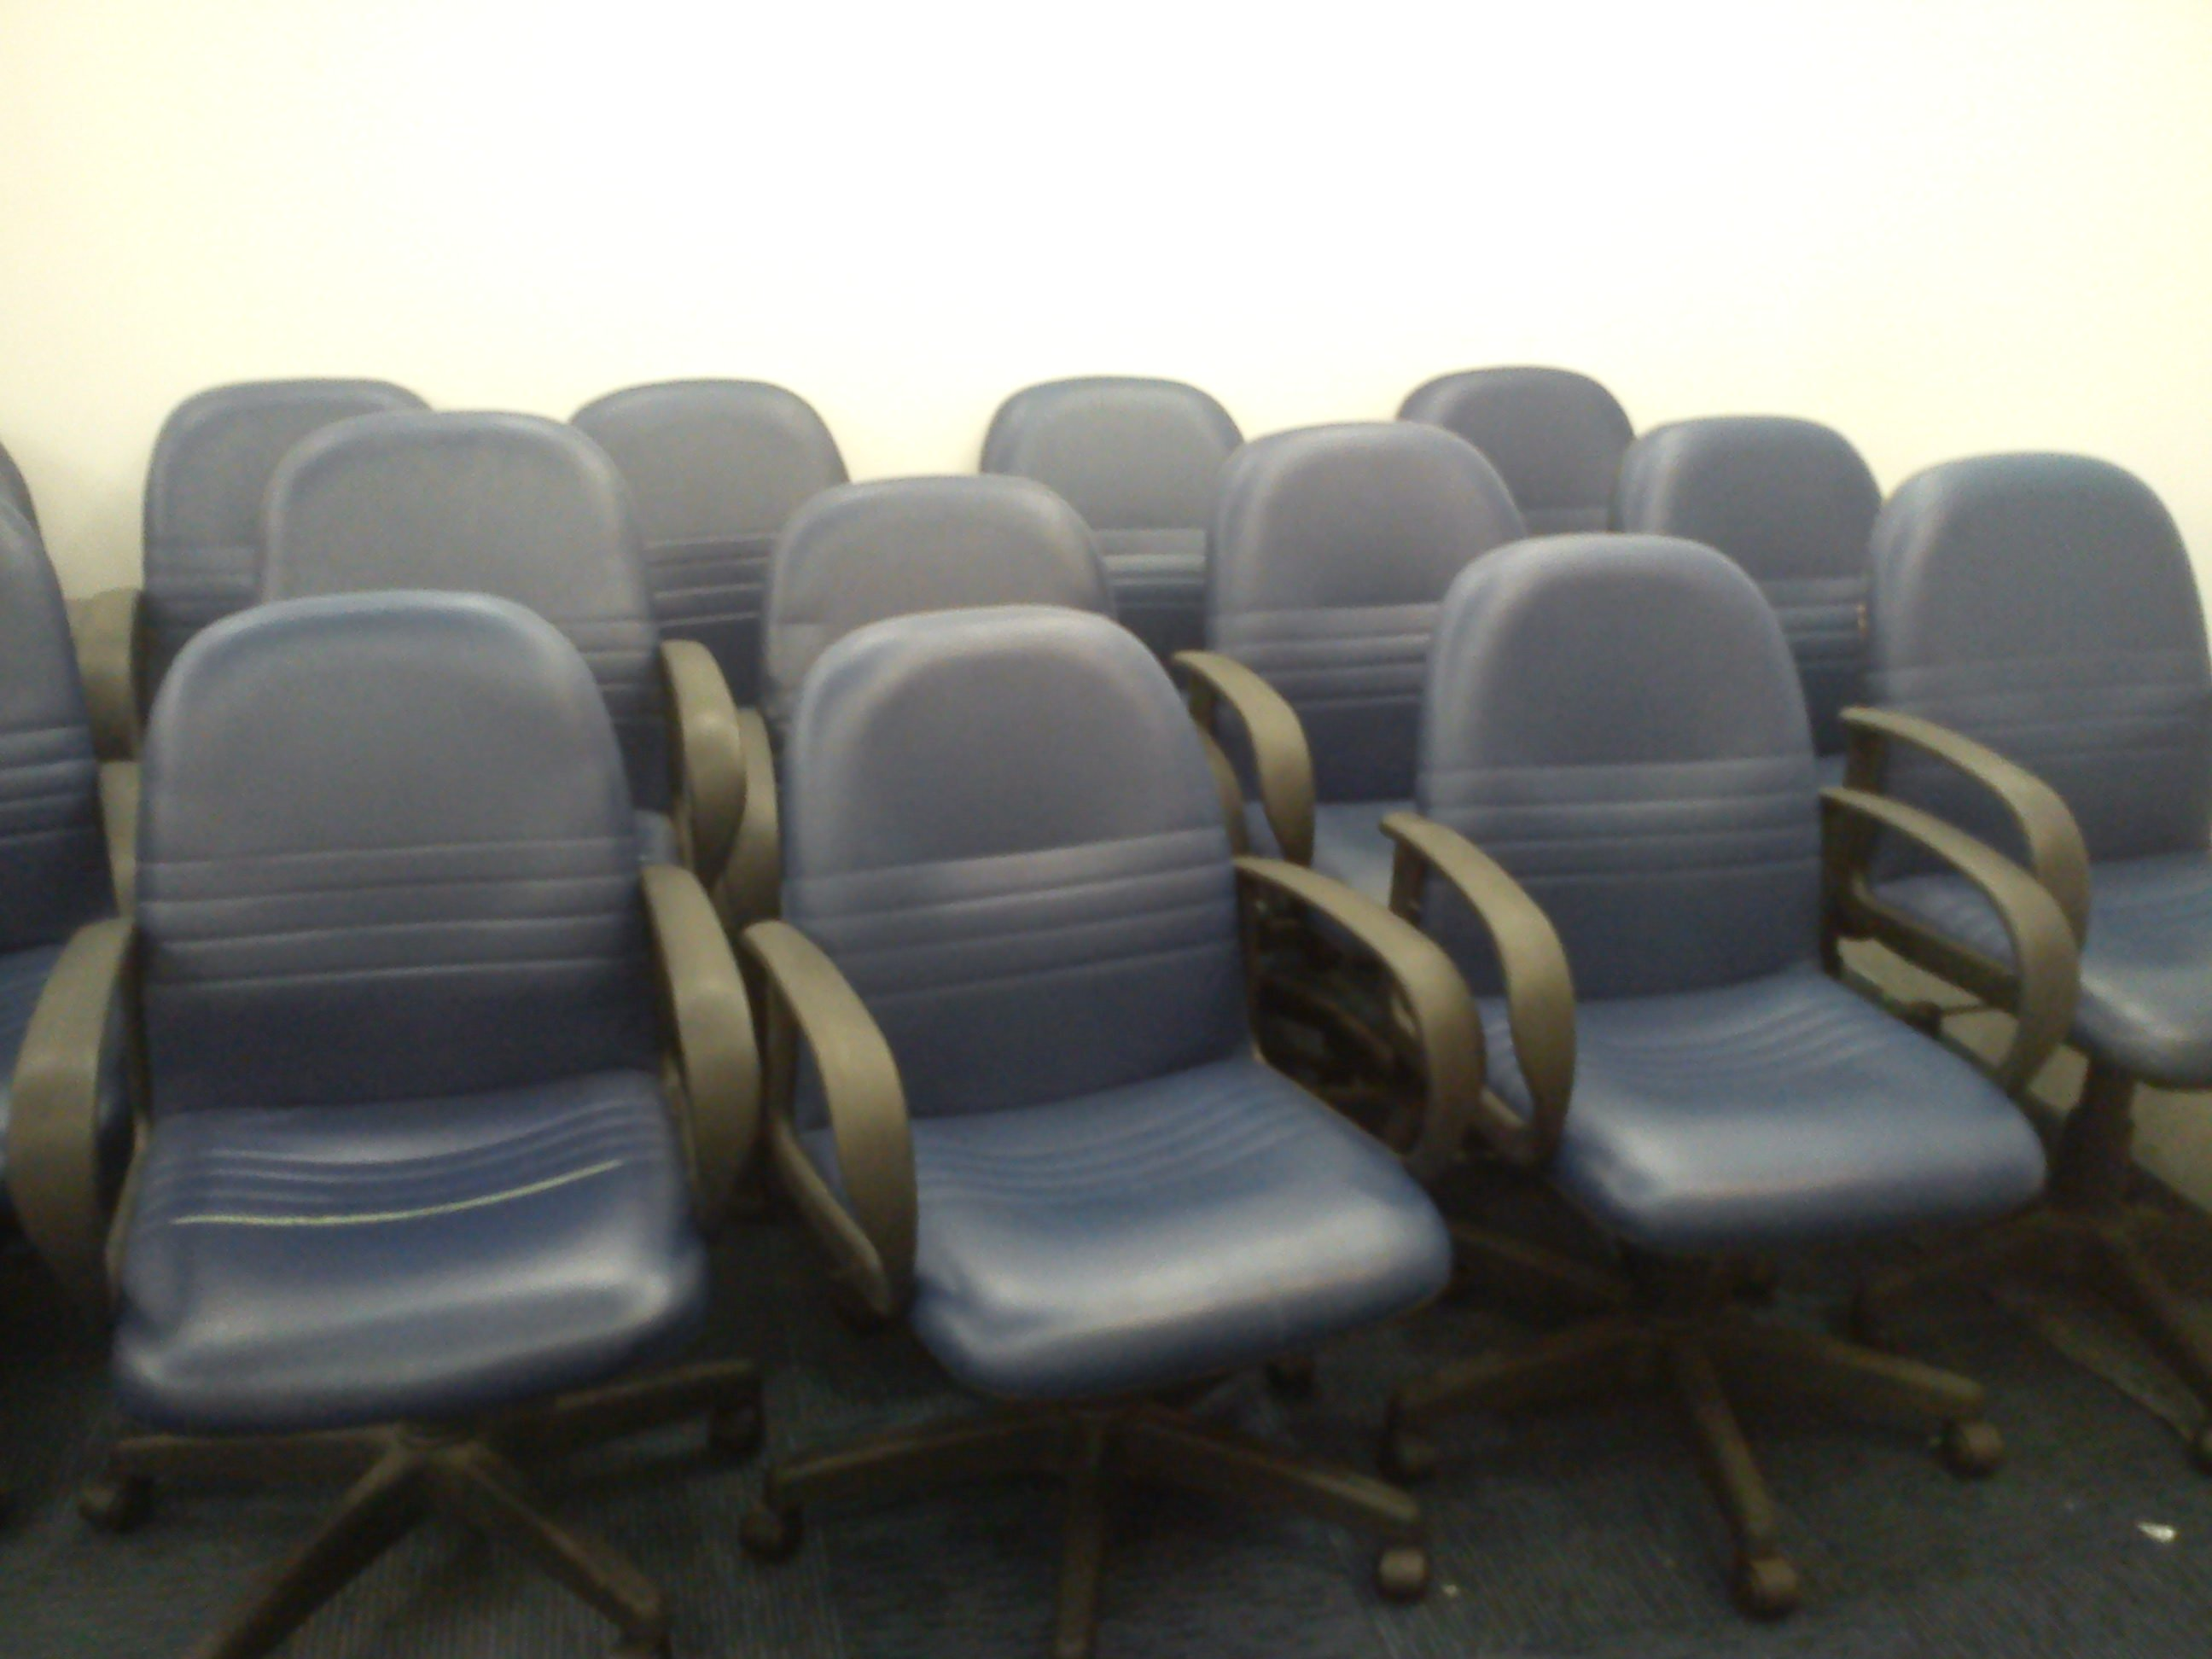 FOR SALE: Lots Offfce Chairs from $5, Tables from $10, Pedestals $10up....